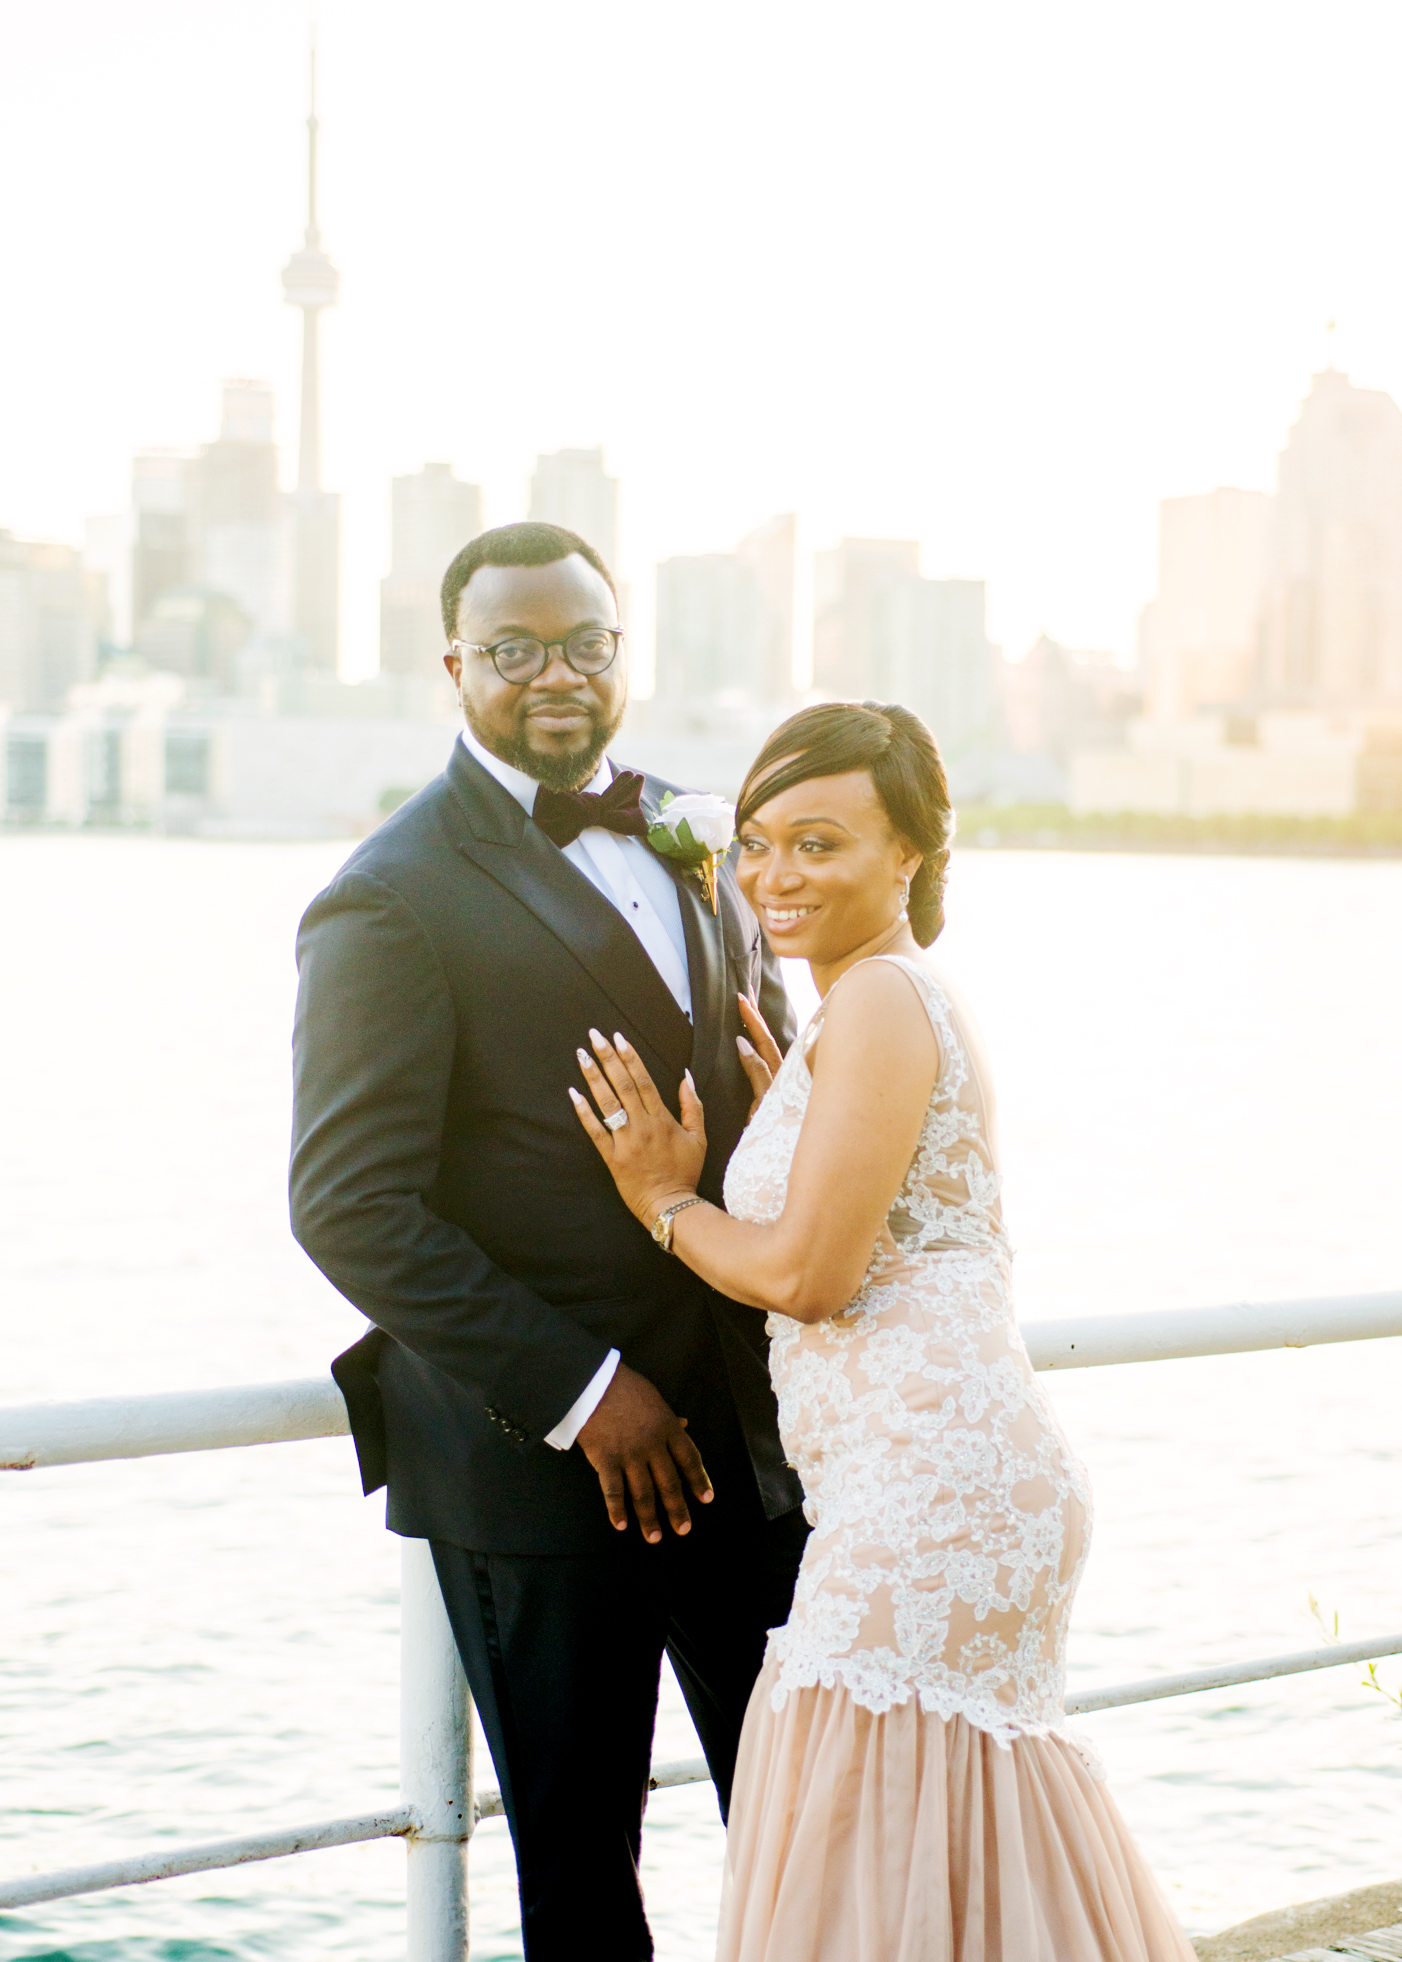 wedding-bride-toronto-photographer-once-wed-blog-dress-shoes-modern-classic-romantic-erika-alvarenga-photography-eap-love-traditional-day-marriage-vows-editorial-summer-fall-winter-spring-beautiful-destination-canada-toronto-oregon-couple-africa.jpg